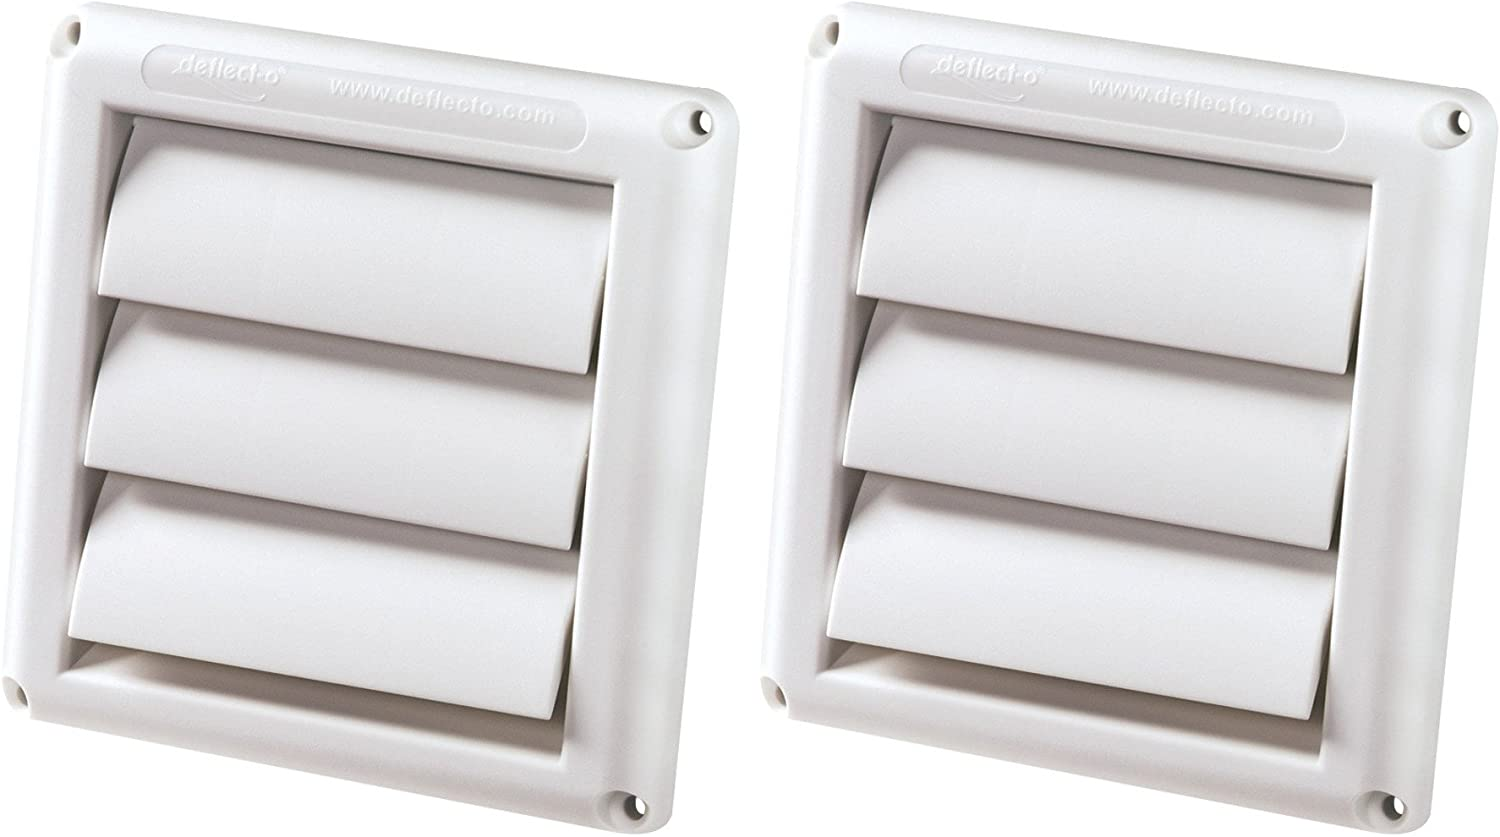 2-PACK of DEFLECTO HS4W/18 Supurr-vent Replacement Vent Hood (4Inch) - White 71zHHwMyRzL